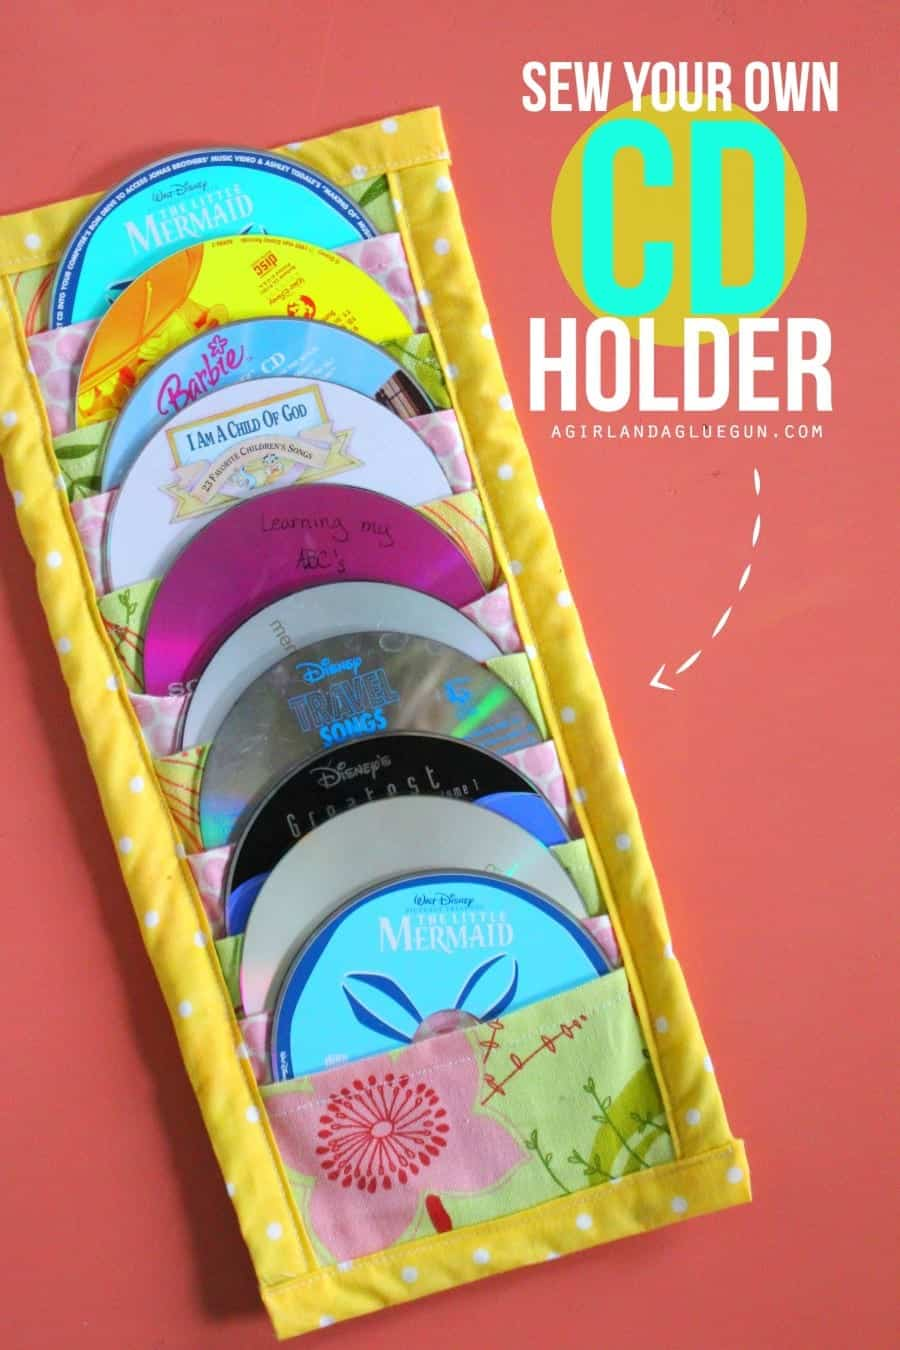 sew your own cd holder